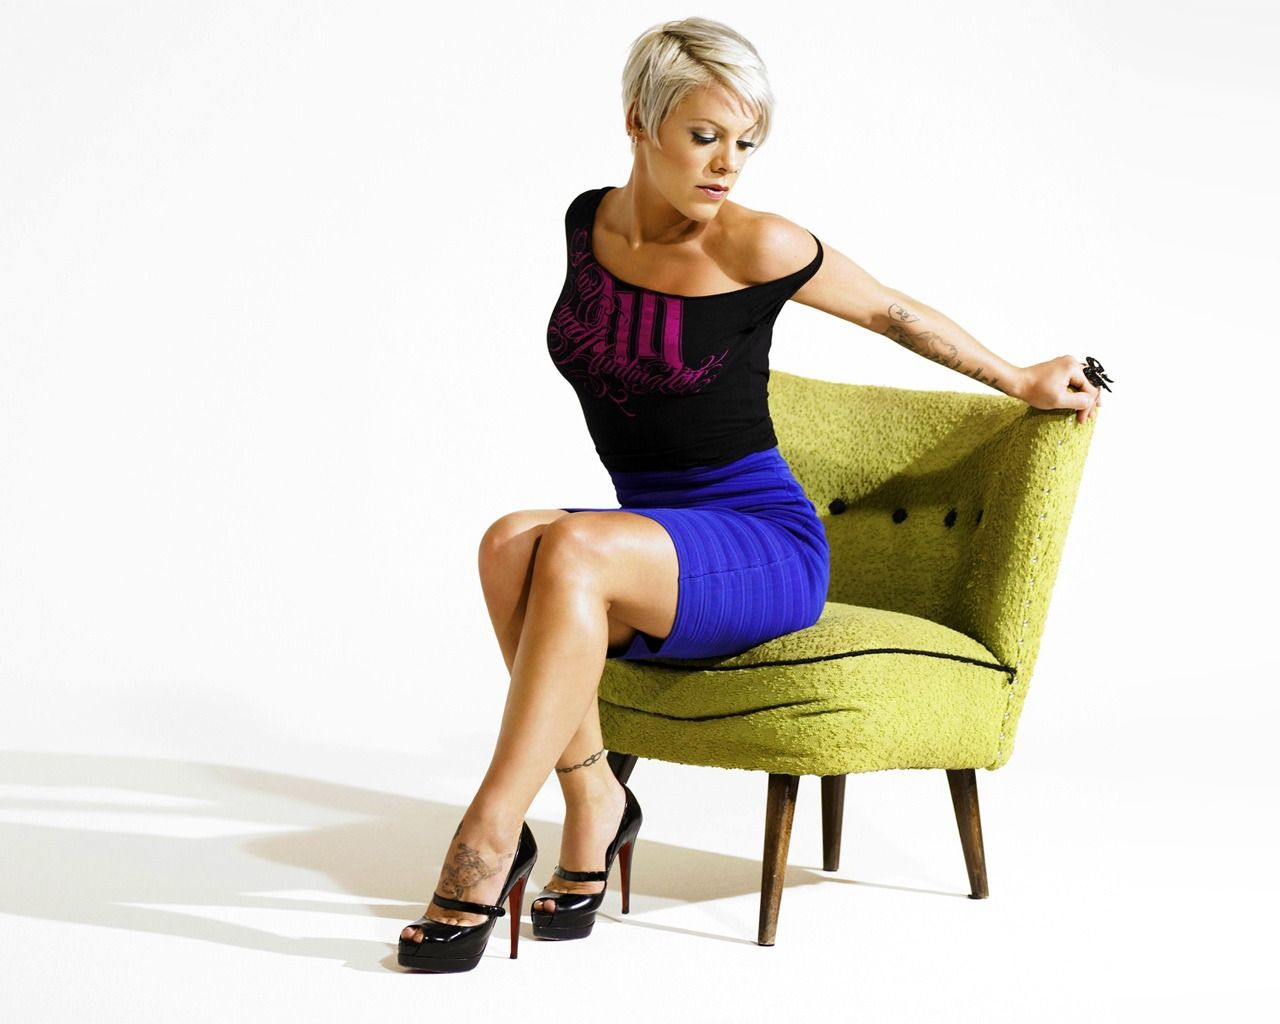 Hot Alecia Beth Moore naked (77 foto and video), Topless, Sideboobs, Feet, legs 2018